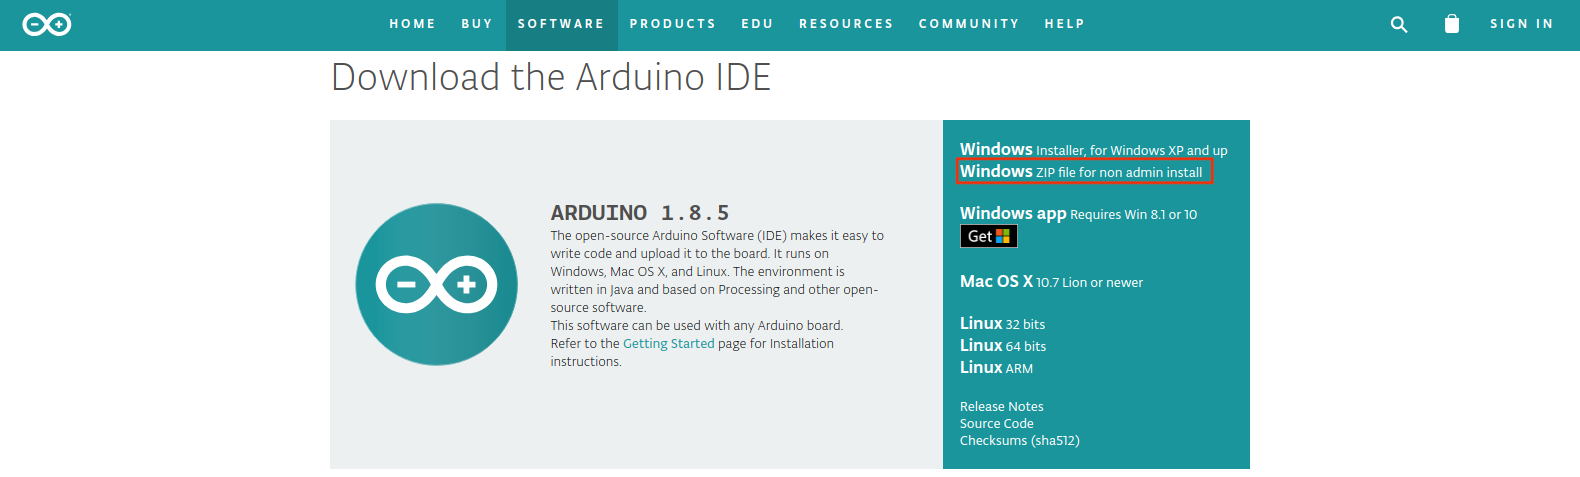 arduino software download for windows 7